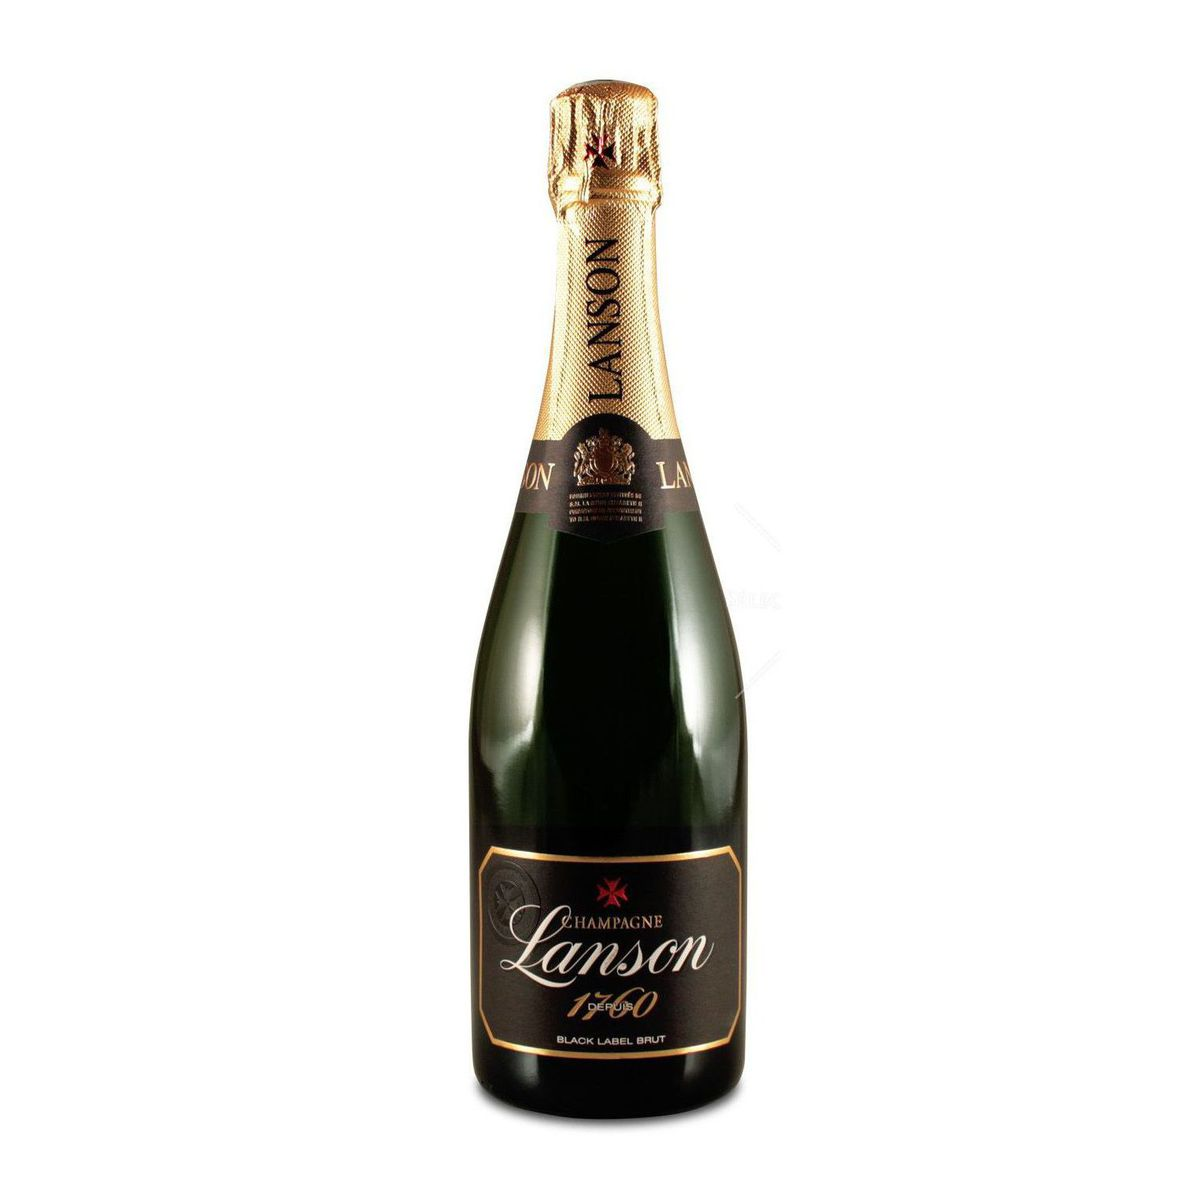 Lanson Black Label Lanson